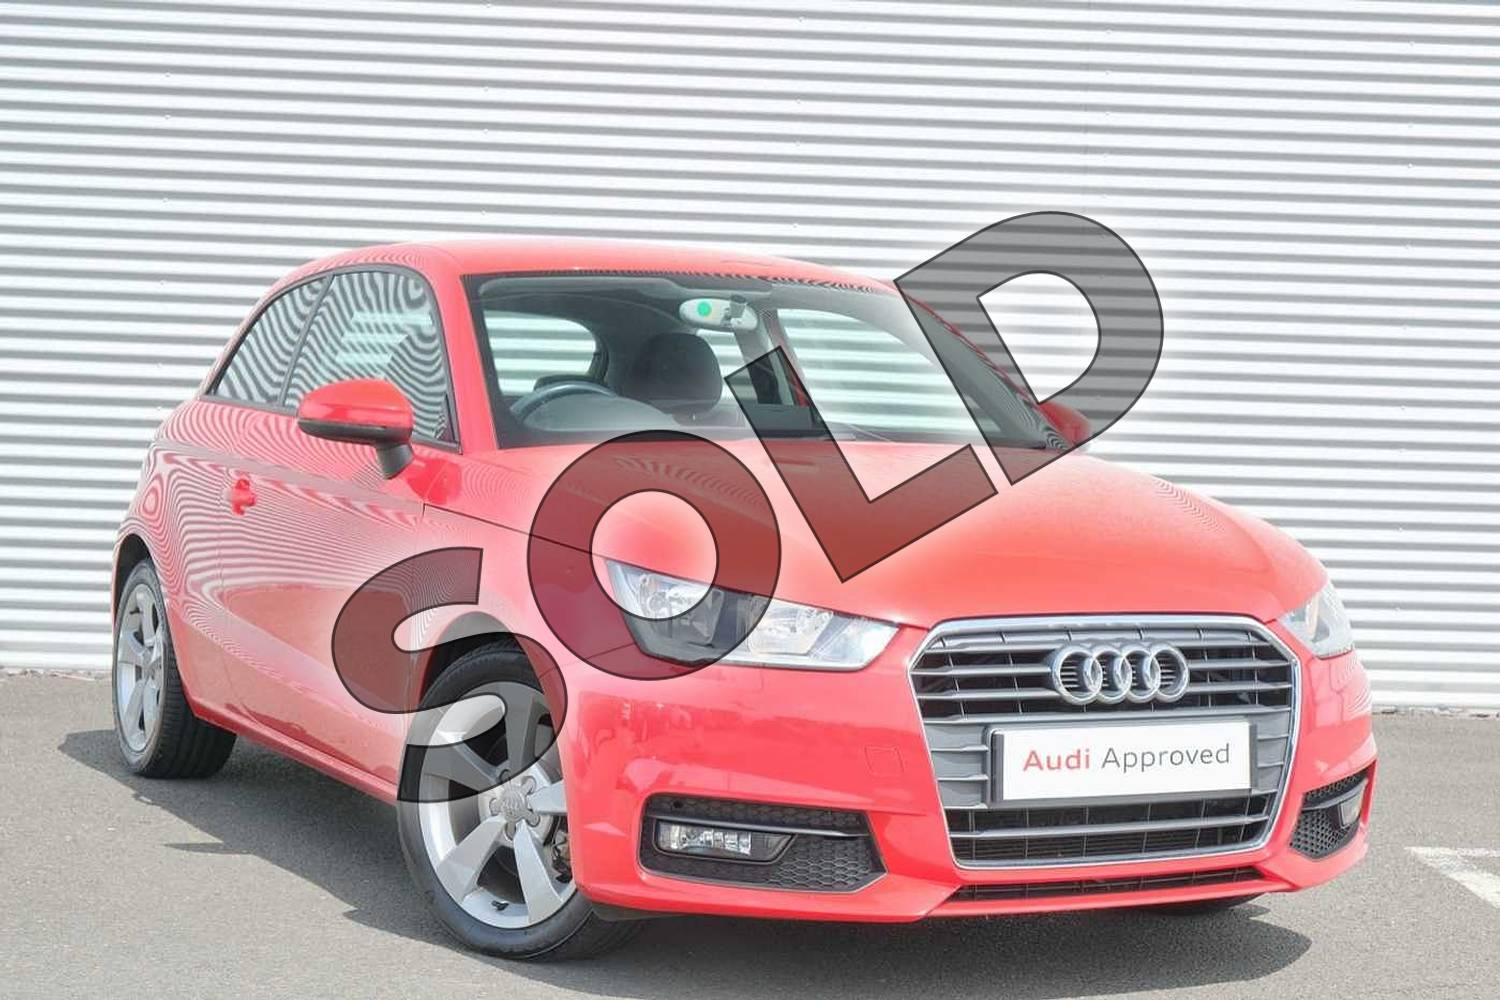 2015 Audi A1 Hatchback 1.4 TFSI Sport 3dr in Misano Red, pearl effect at Coventry Audi